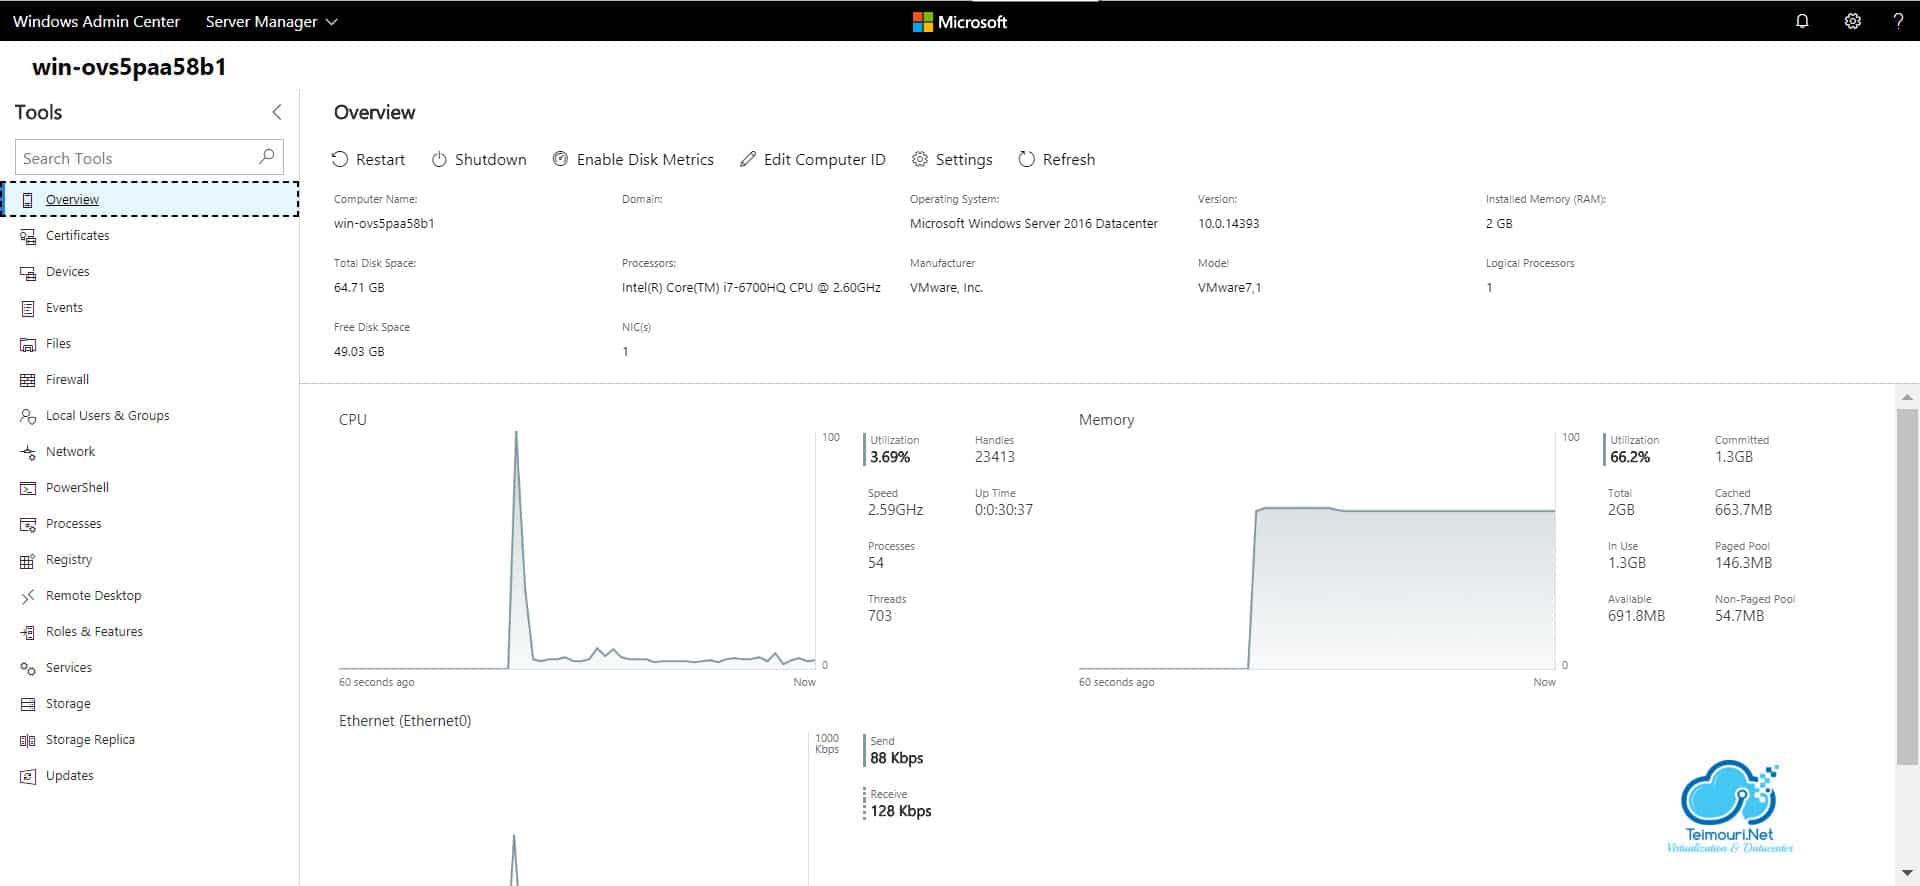 Windows Admin Center - Server Manager